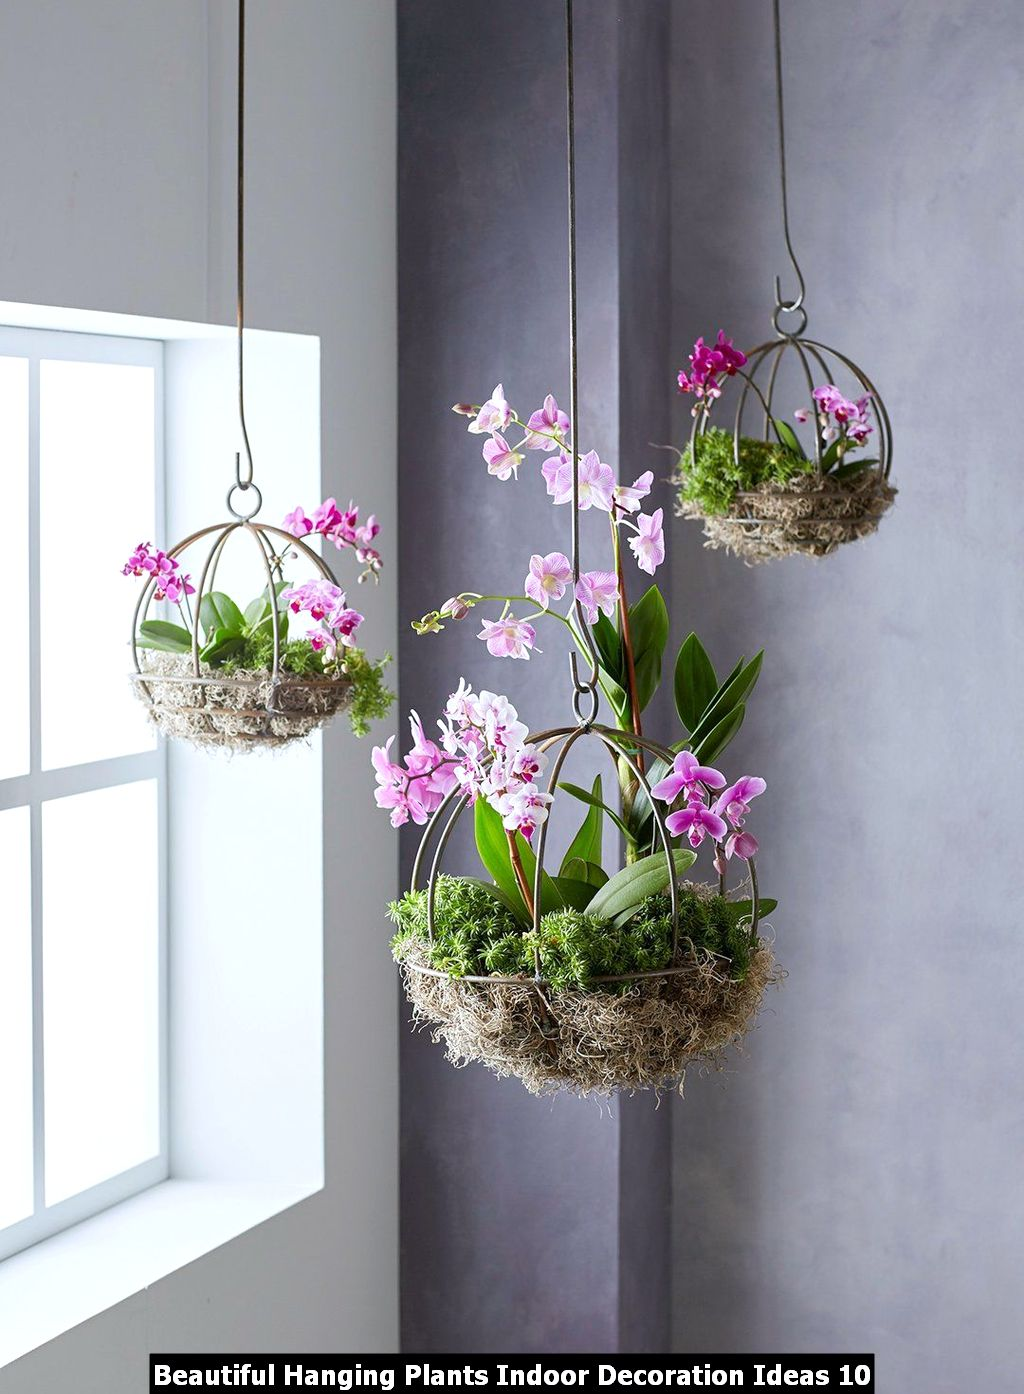 Beautiful Hanging Plants Indoor Decoration Ideas 10